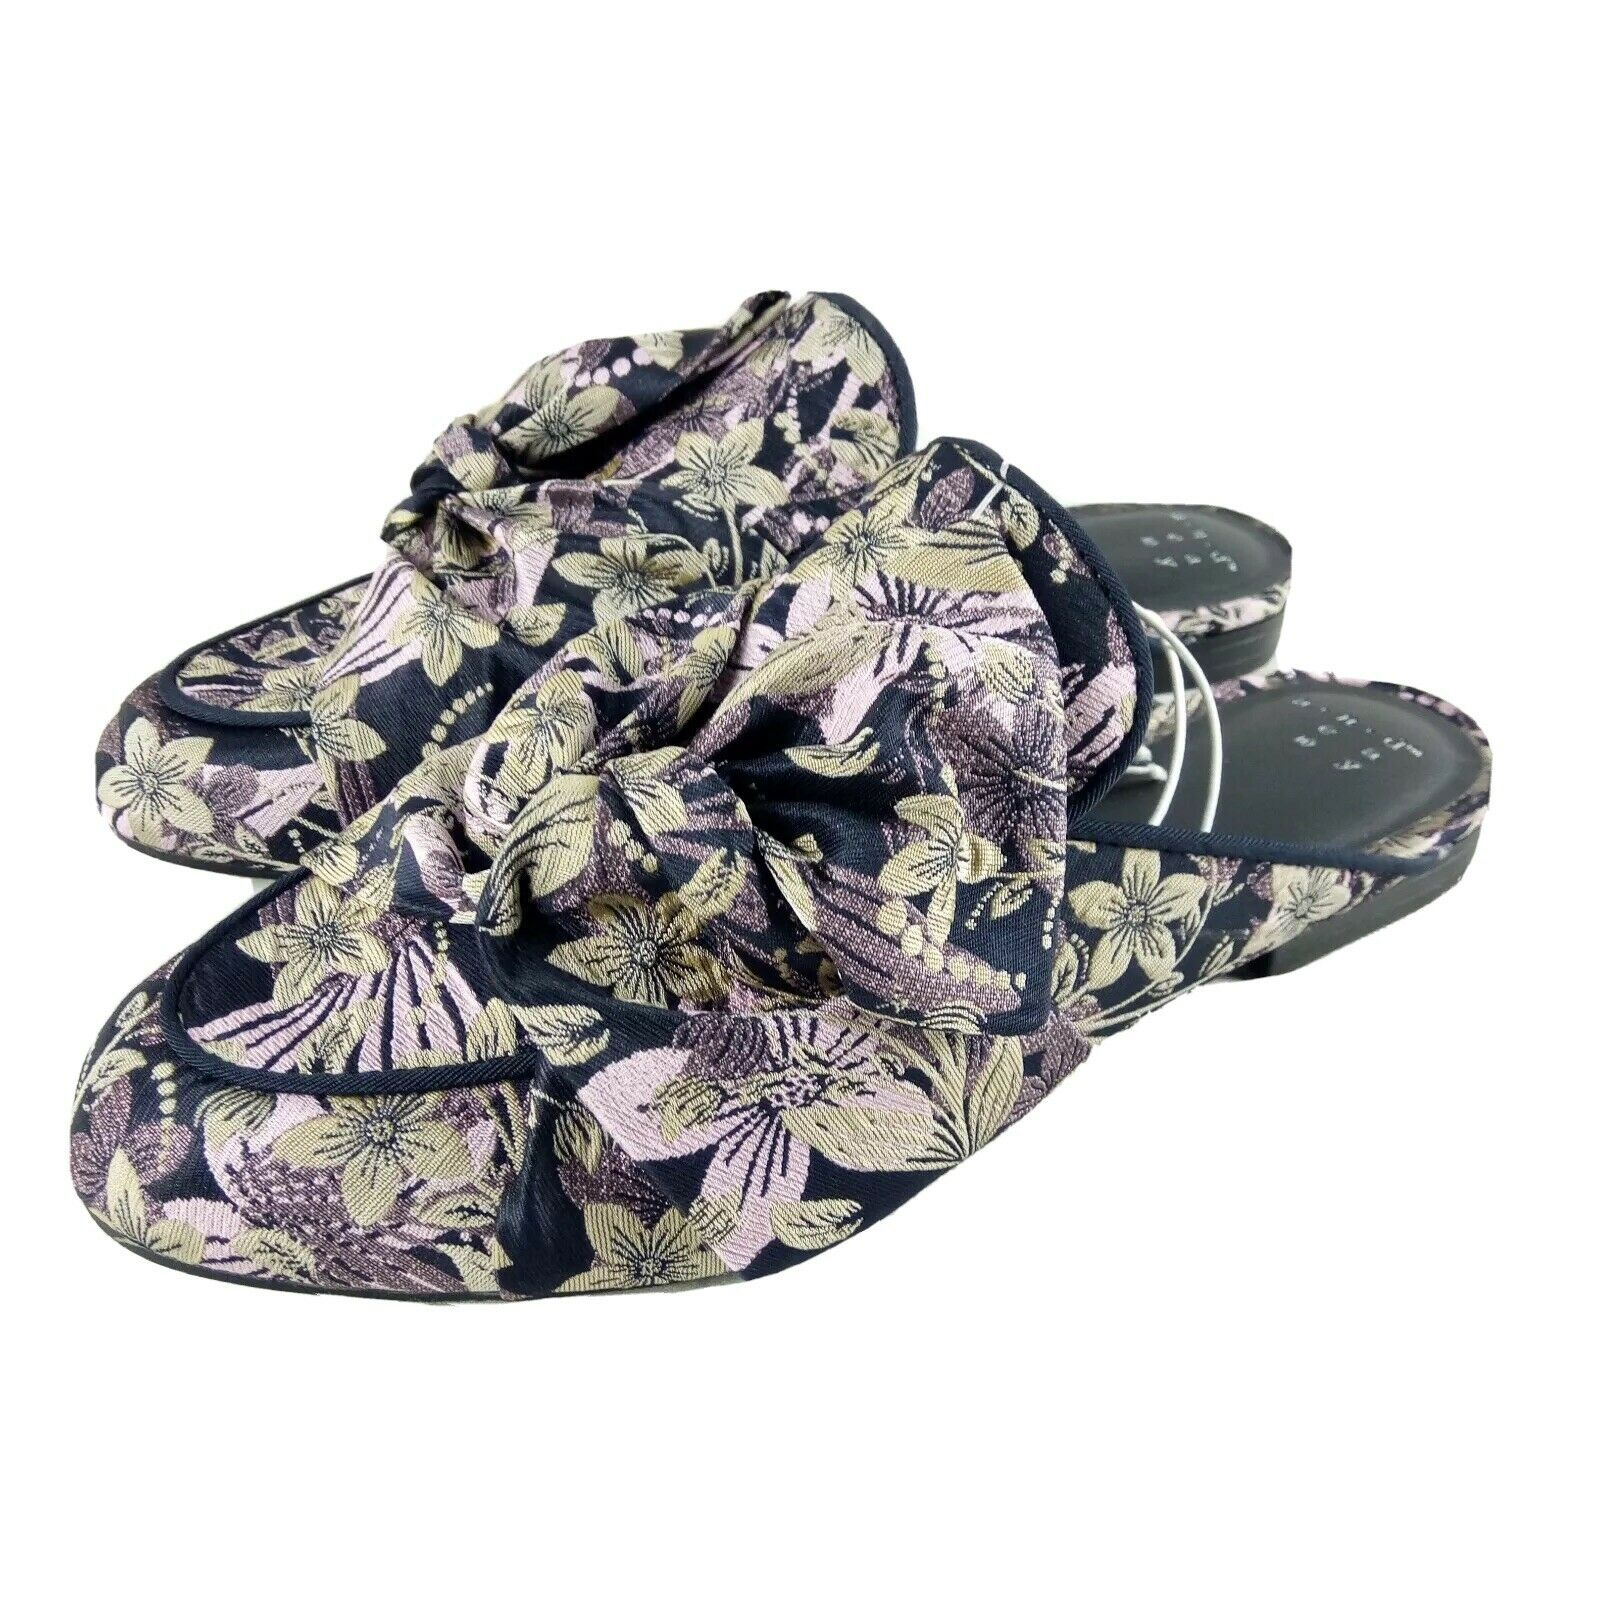 A New Day Holland Mules Purple Jacquard Floral Sandals